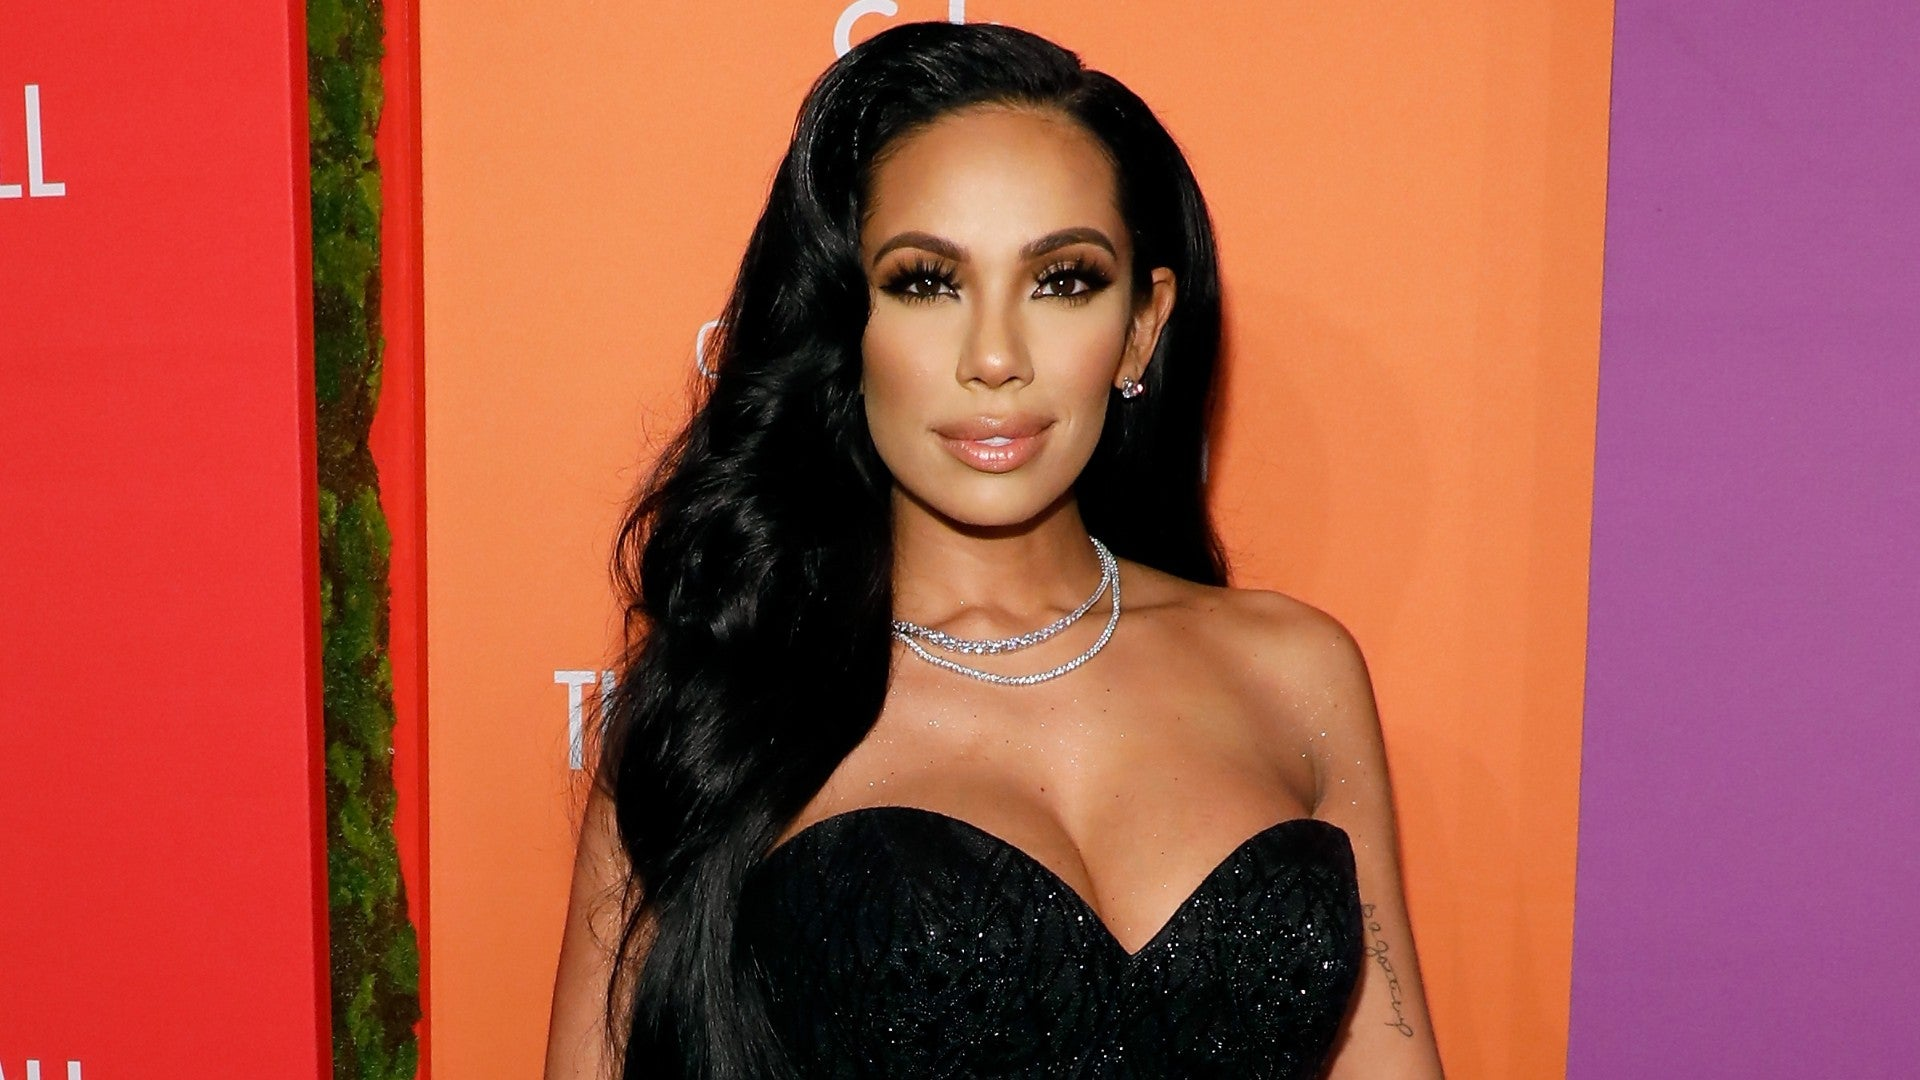 Erica Mena Offers Beauty Advice To Fans In This Video, But Receives Massive Backlash – Find Out Why In This Video